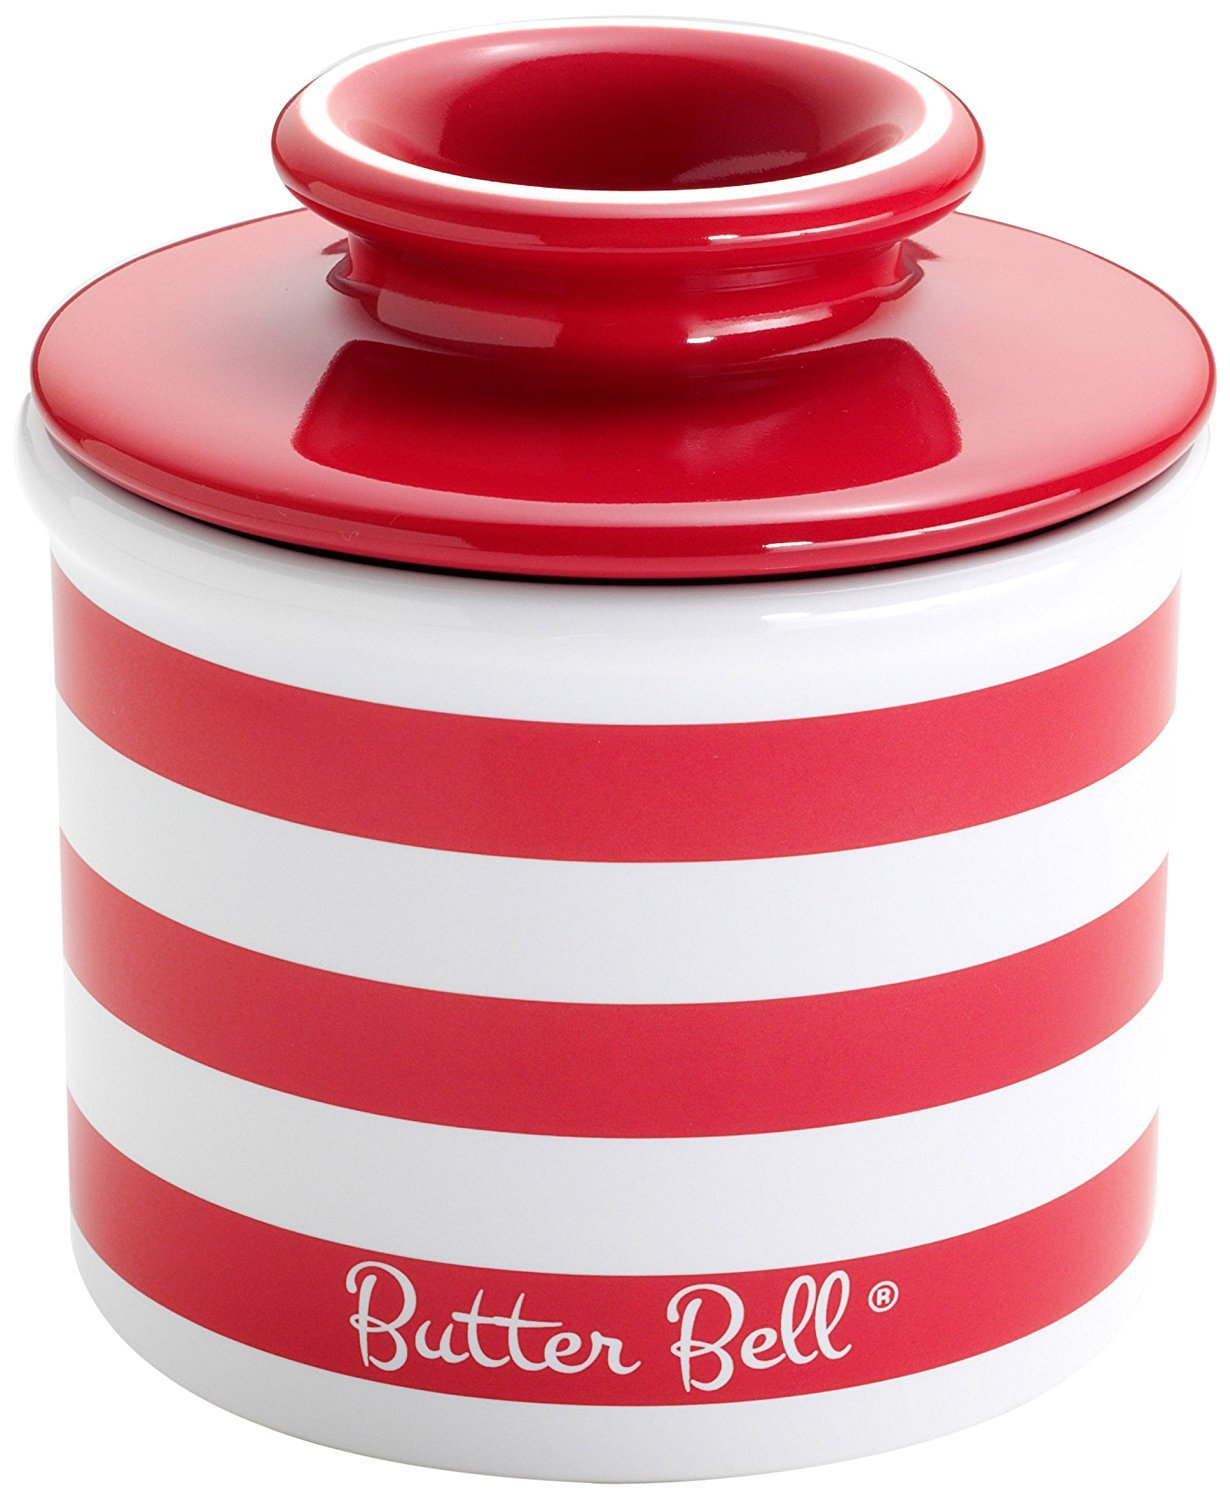 Butter Bell - The Original Butter Bell Crock by L. Tremain, French Ceramic Butter Dish, Striped Collection, Candy Apple Red